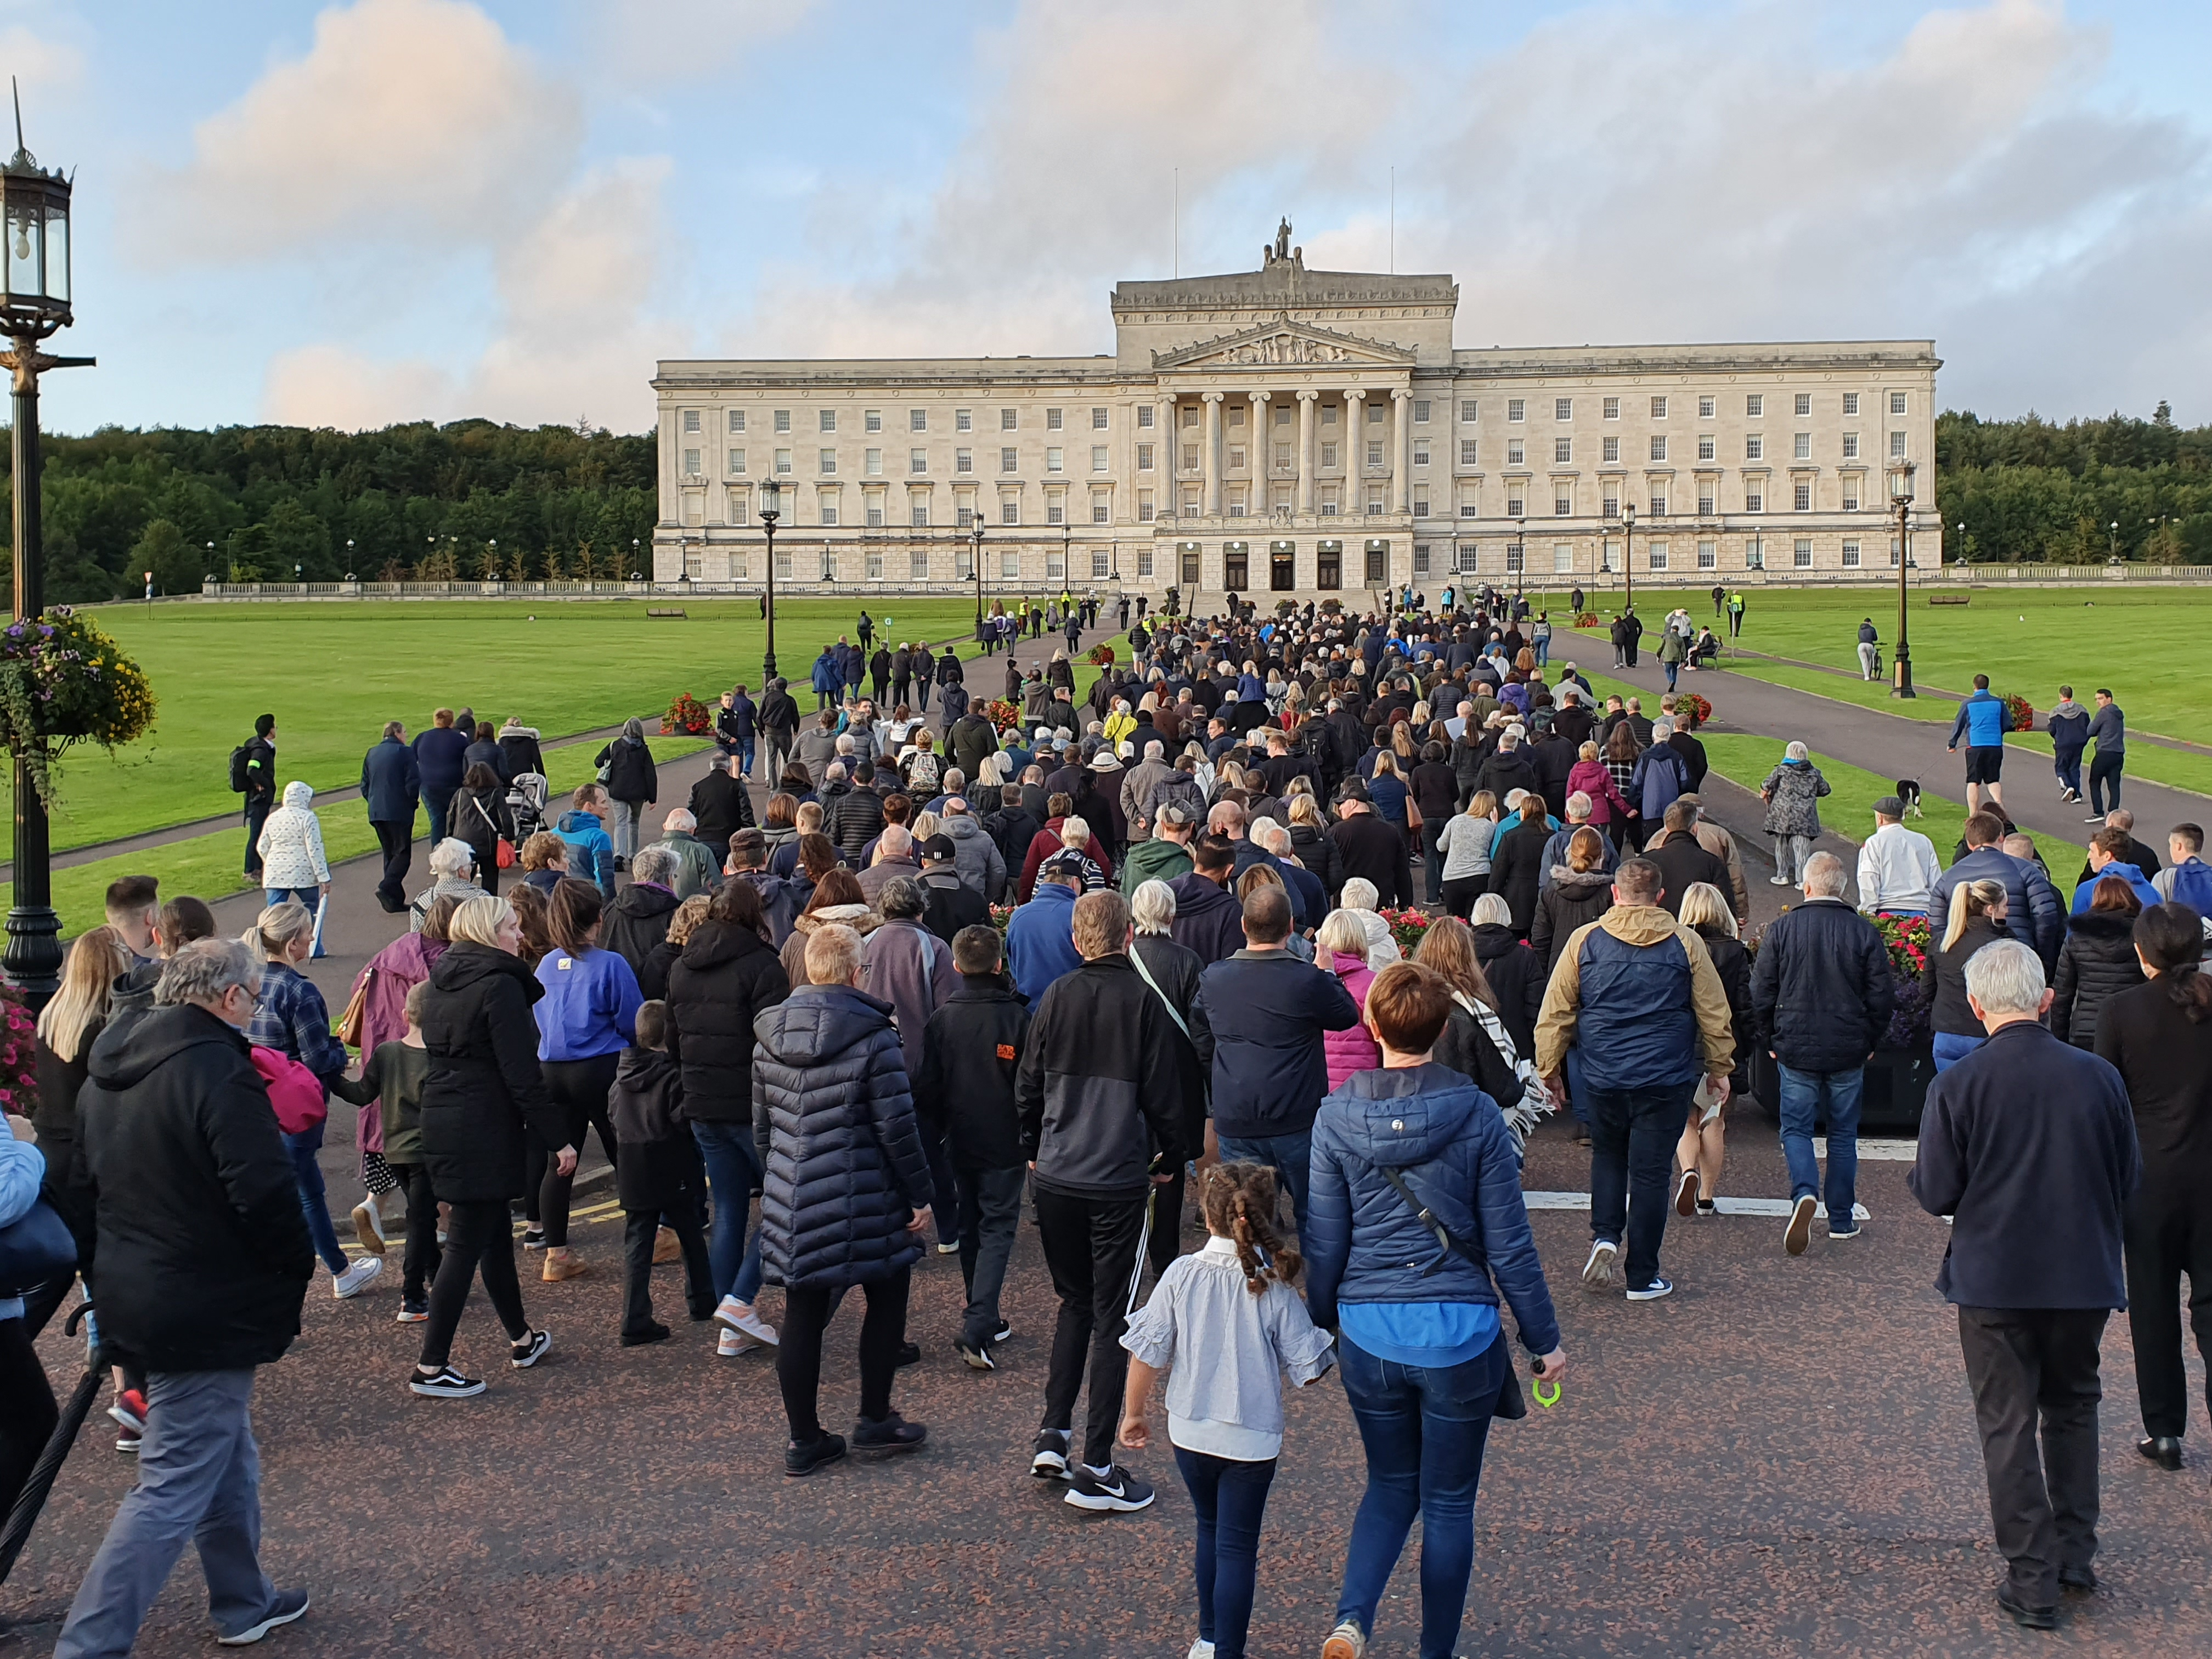 An estimated 4,000 people took part in the NI Voiceless demonstration